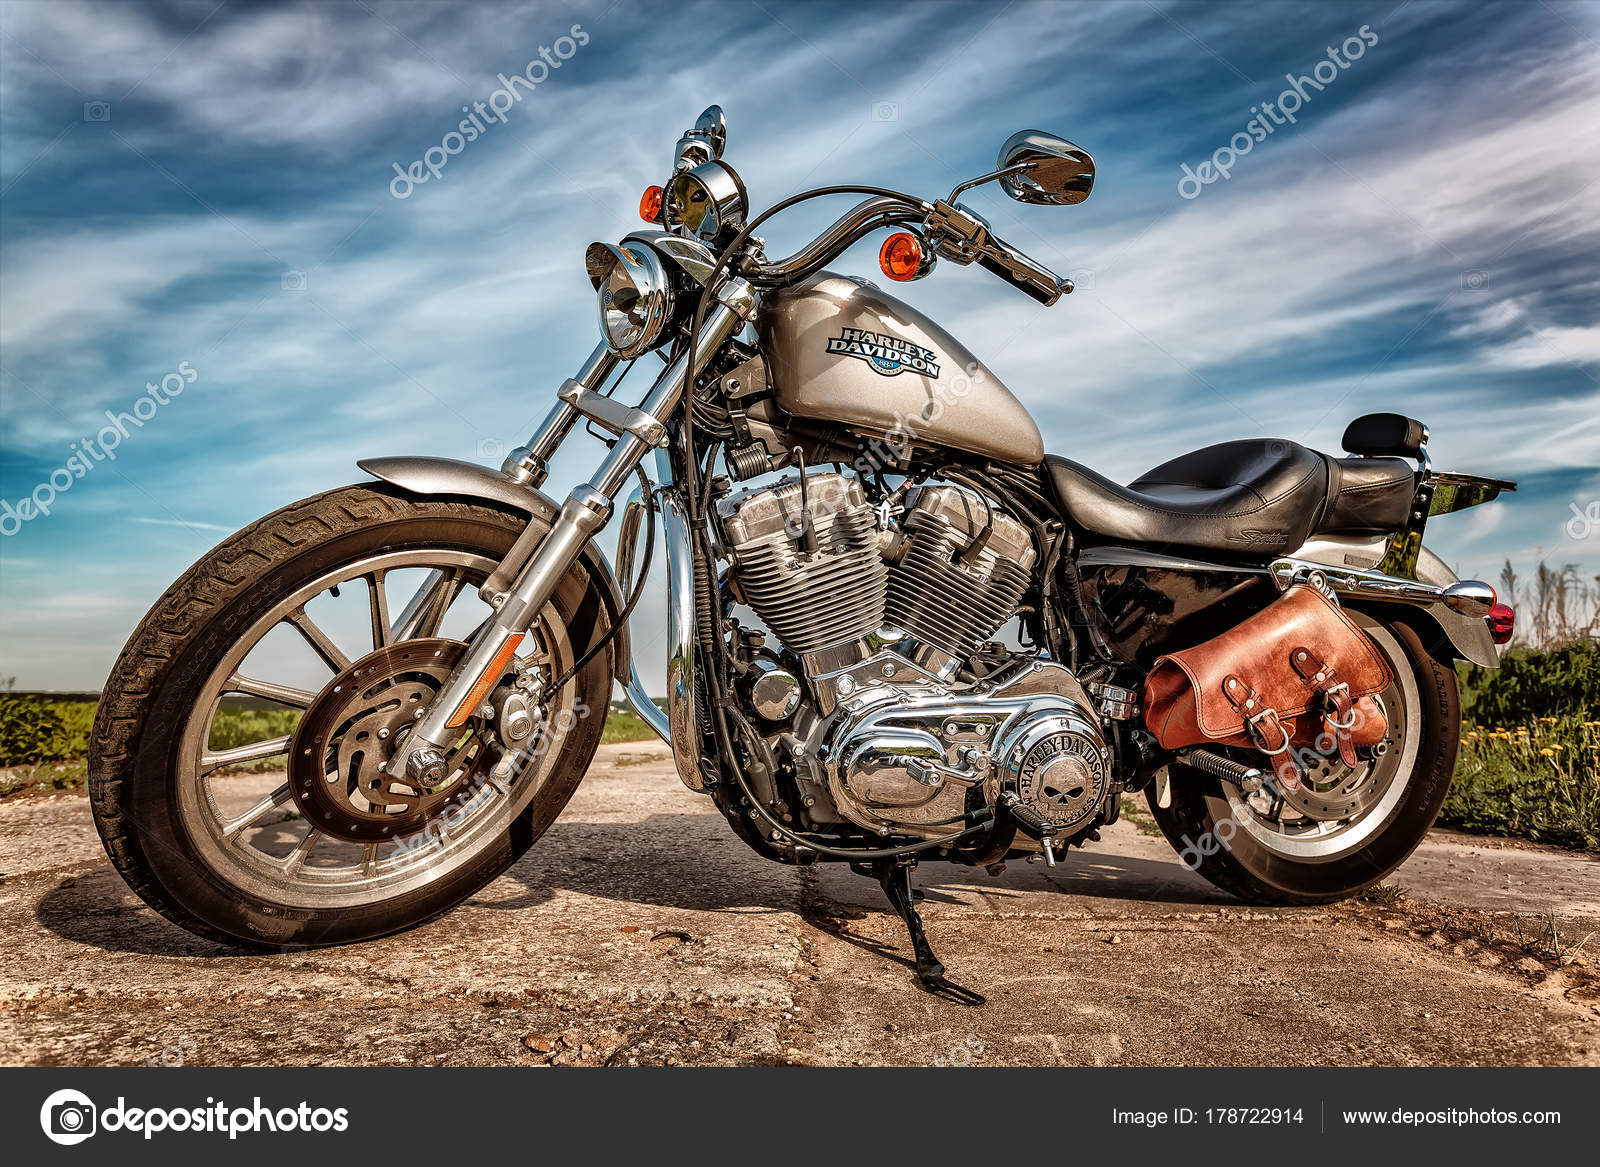 RUSSIA JULY 7 2013 Harley Davidson Sportster 883 Low Sustains A Large Brand Community Which Keeps Active Through Clubs Events